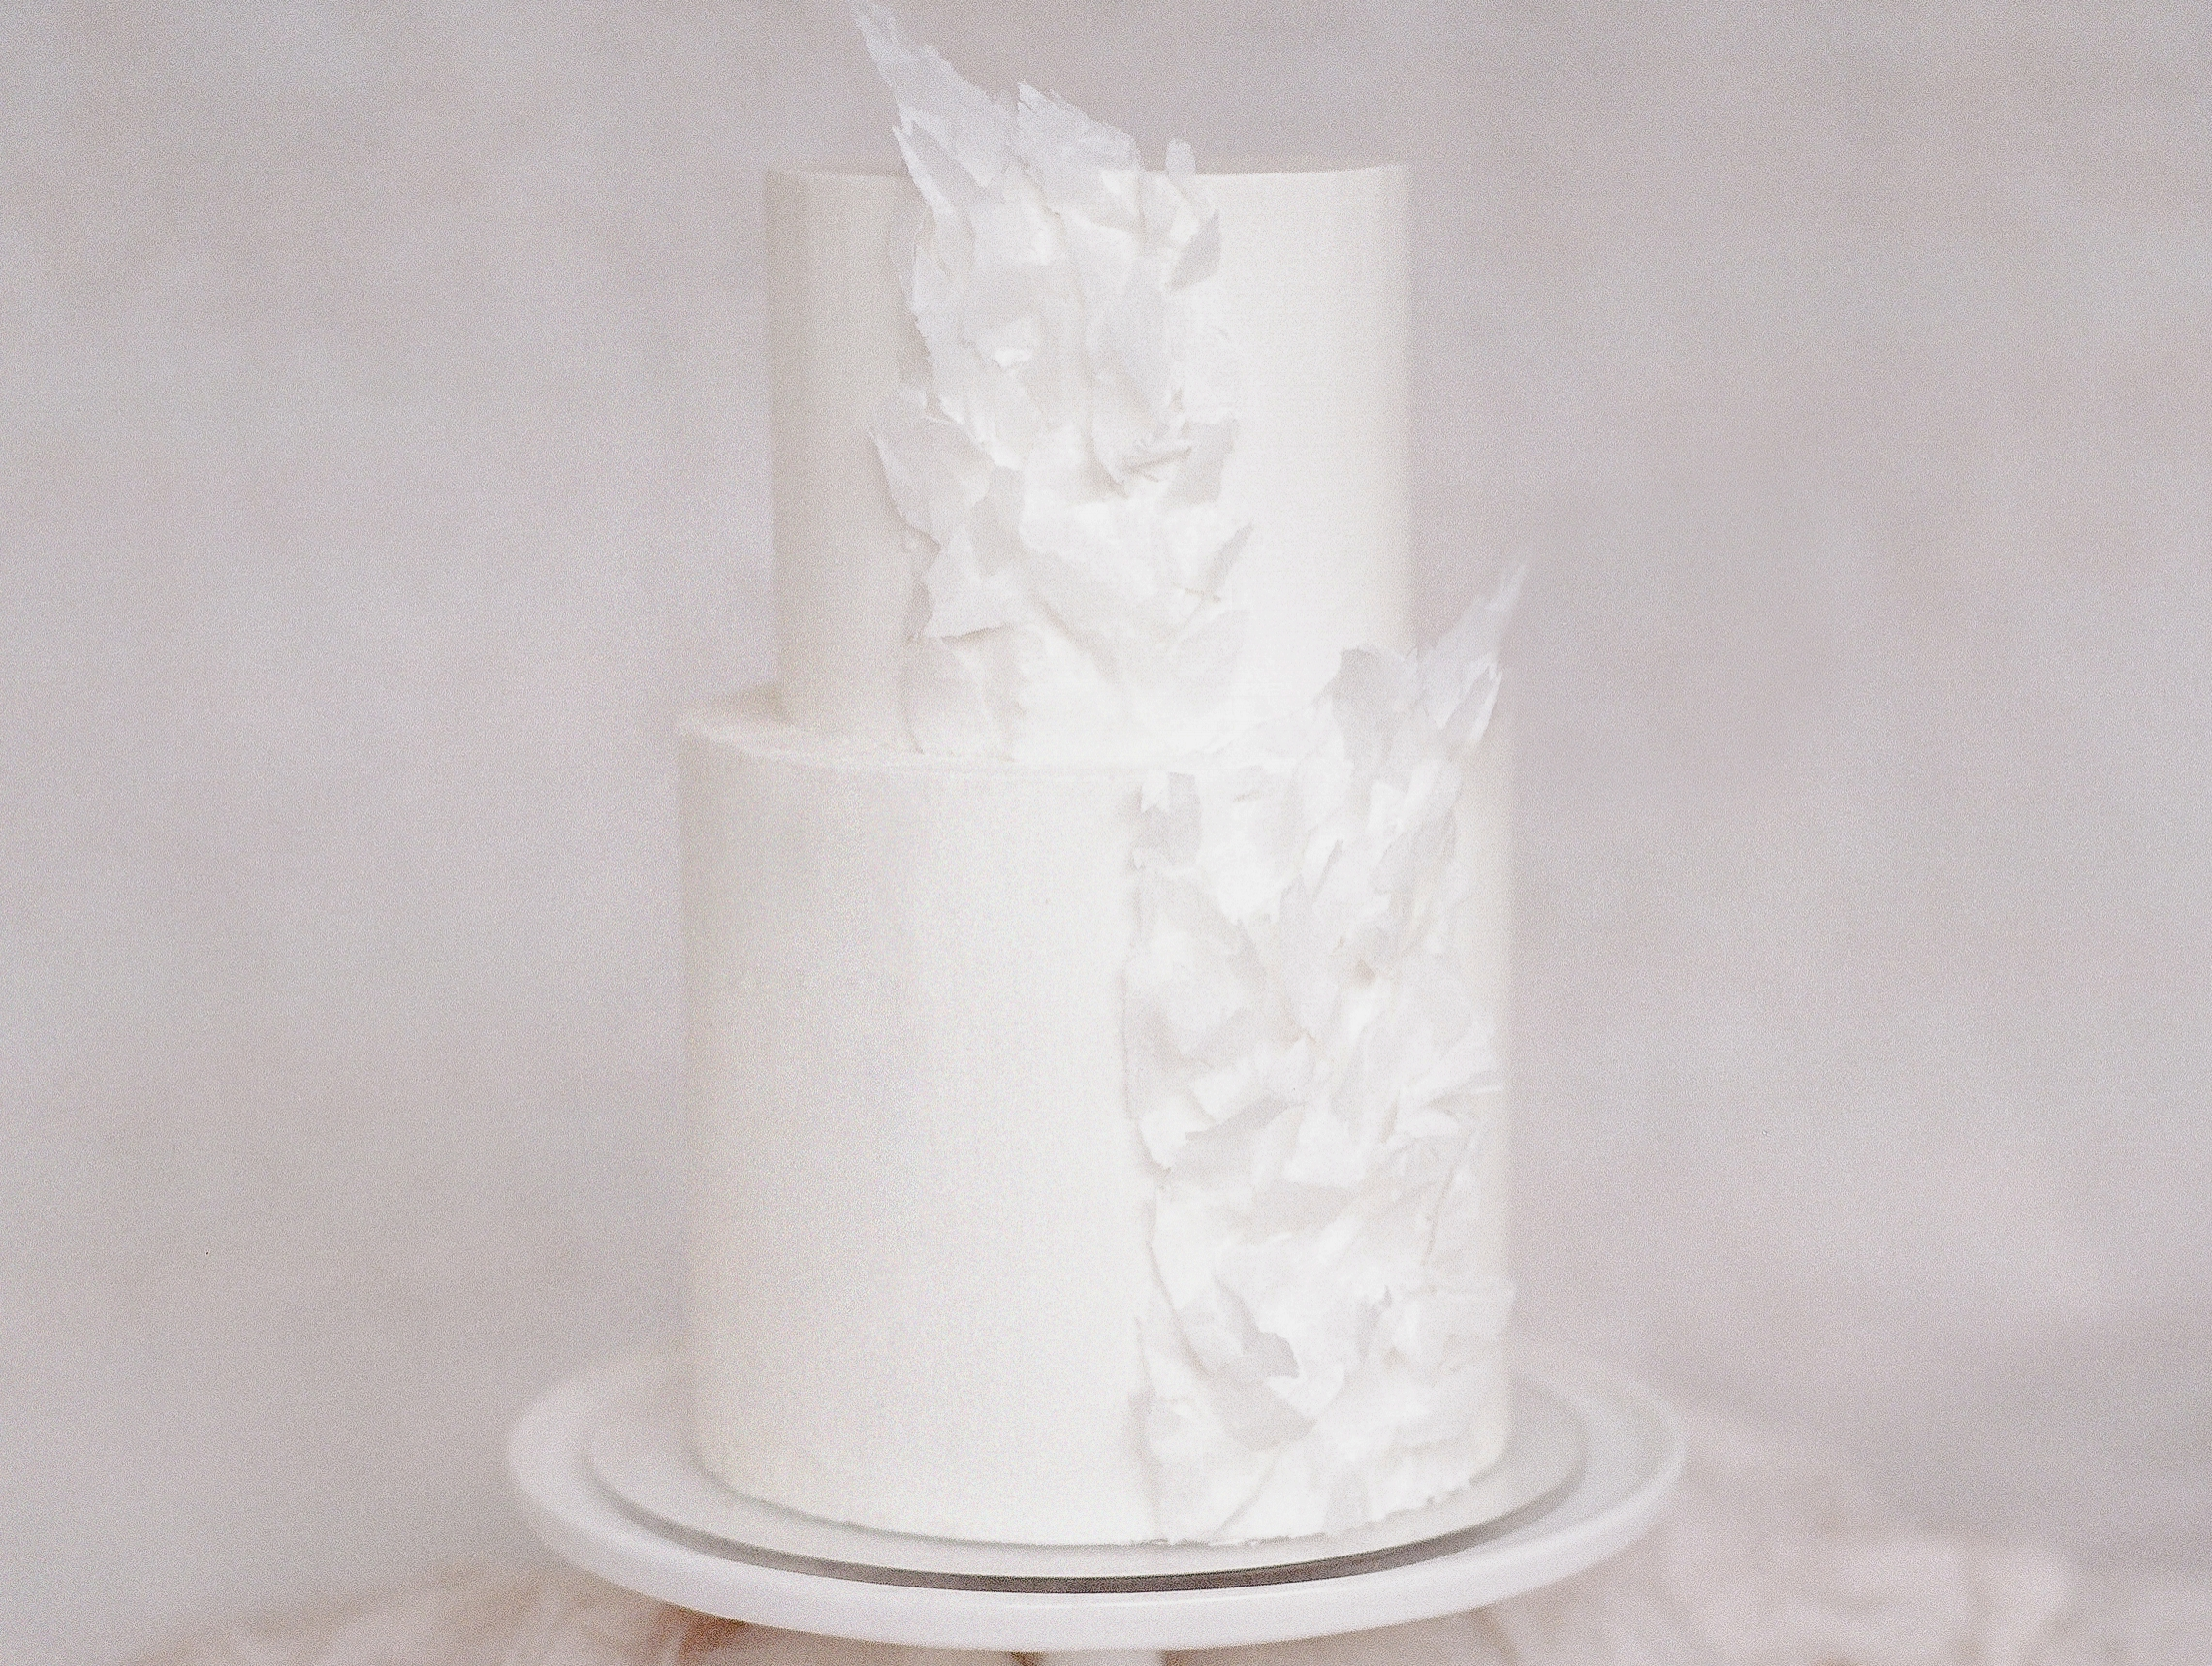 The Statement - Custom cakes for your event. Let's brainstorm, find inspiration and create something that is truly one-of-a-kind!